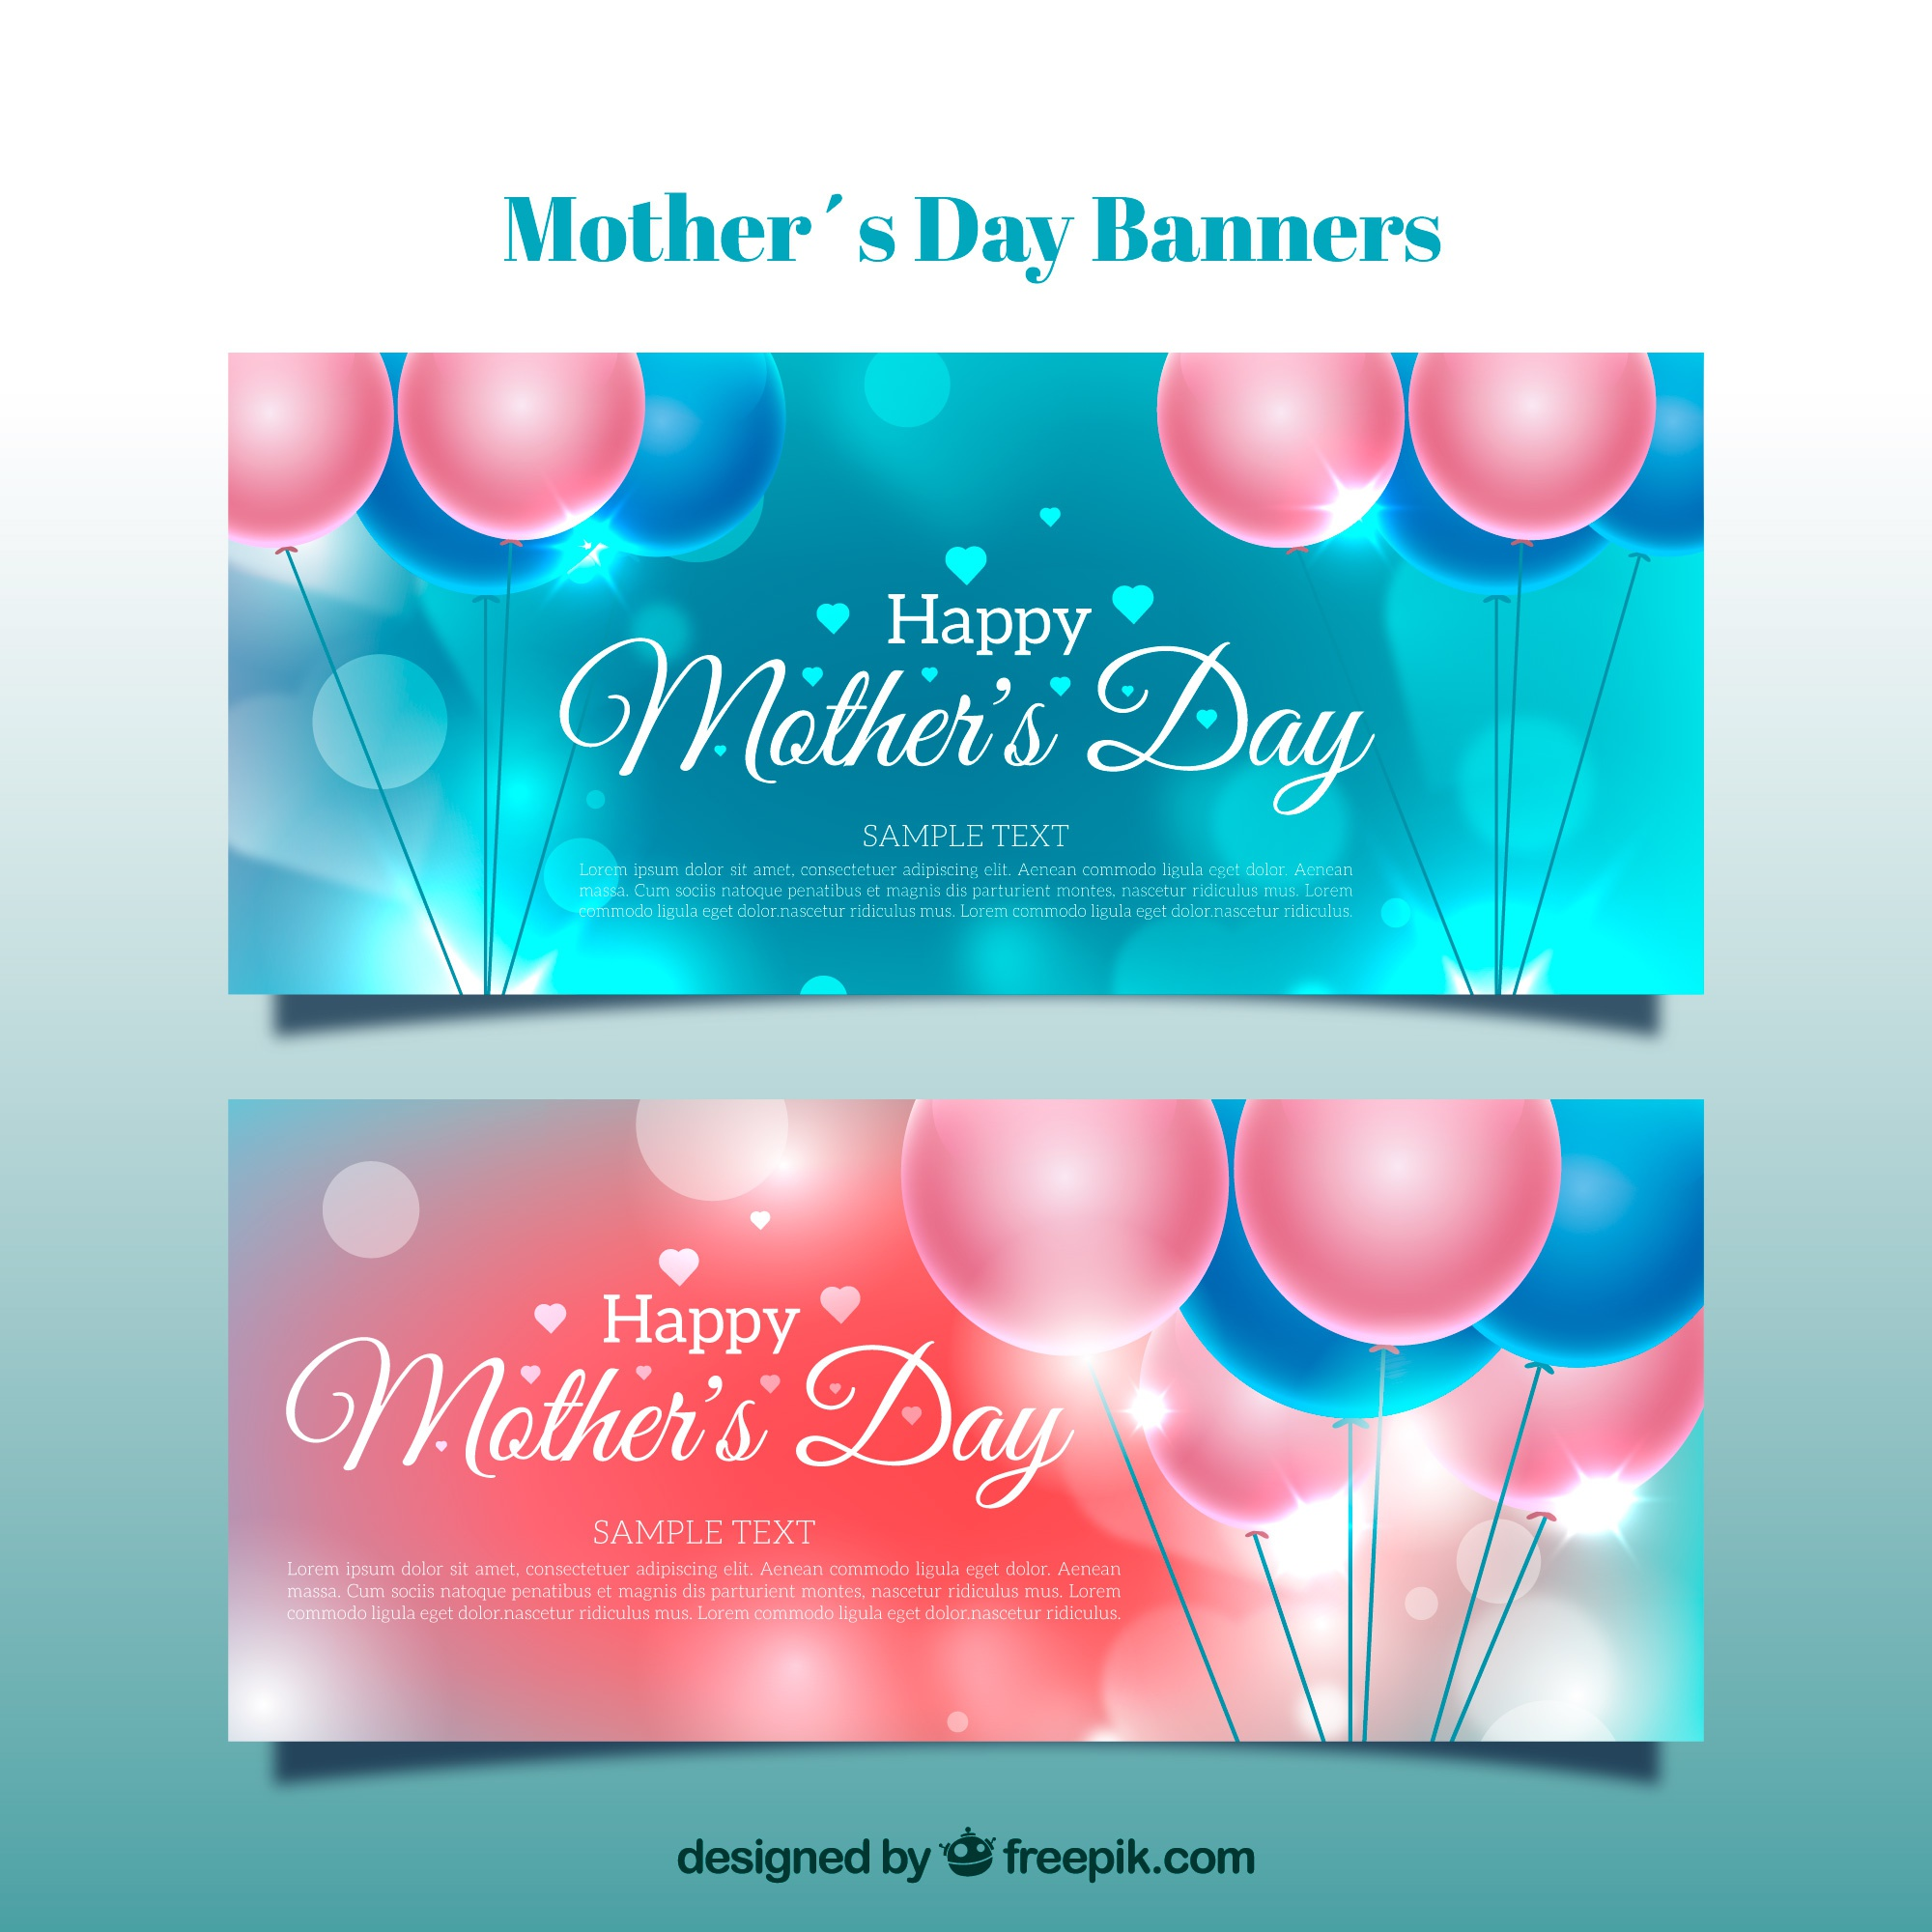 Mother's day banners met ballonnen en bokeh effect